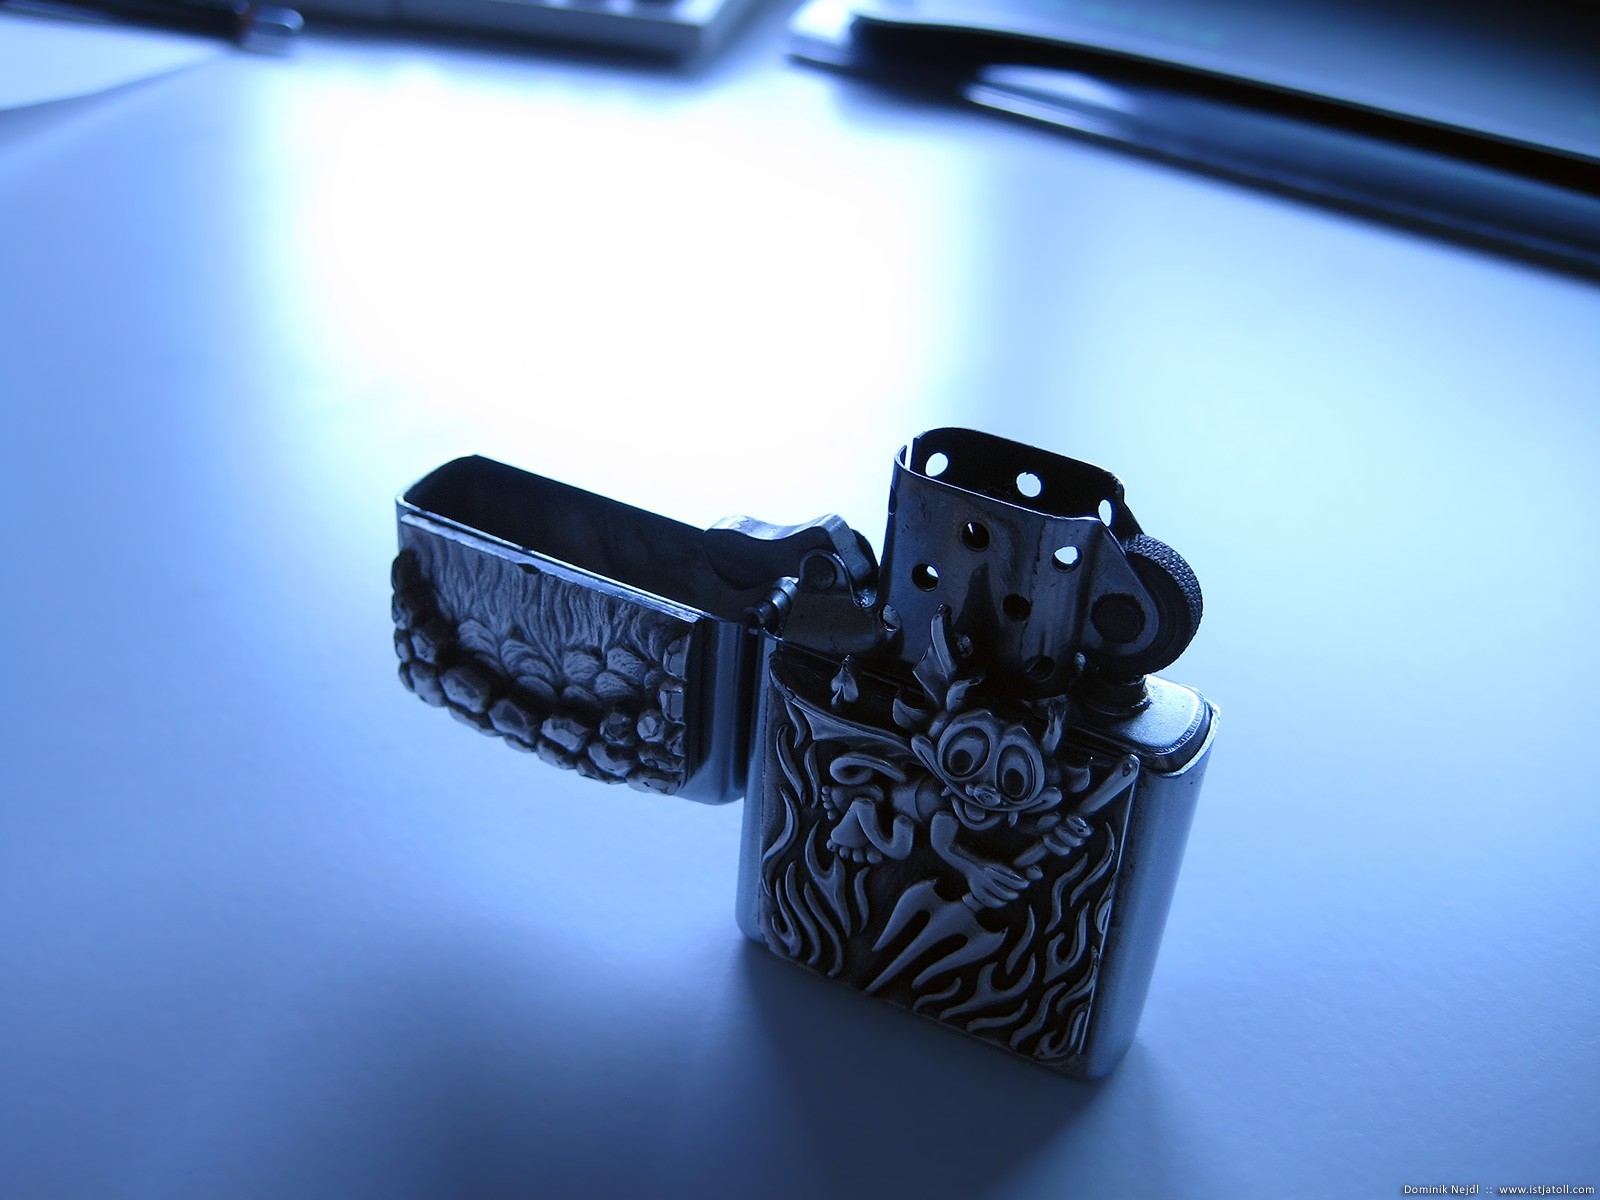 Zippo lighter HD Wallpaper